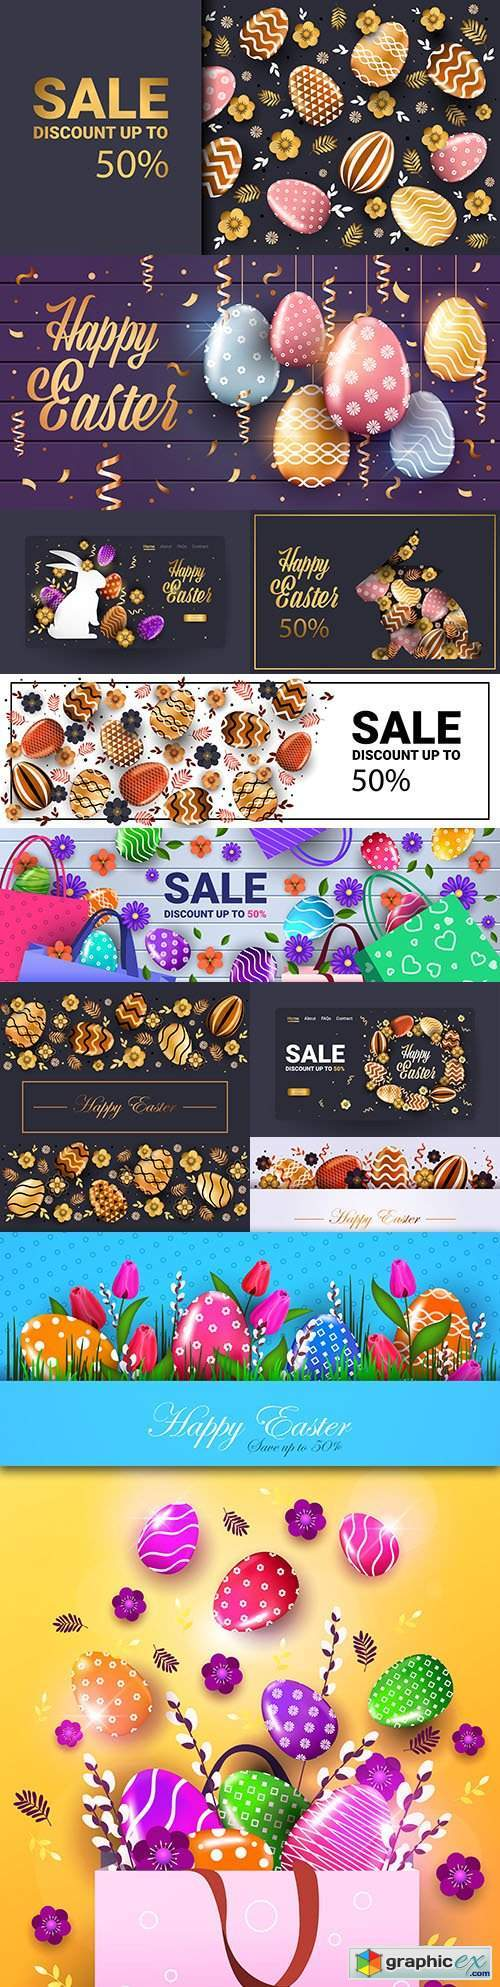 Happy Easter sale banner with decorative eggs and flowers